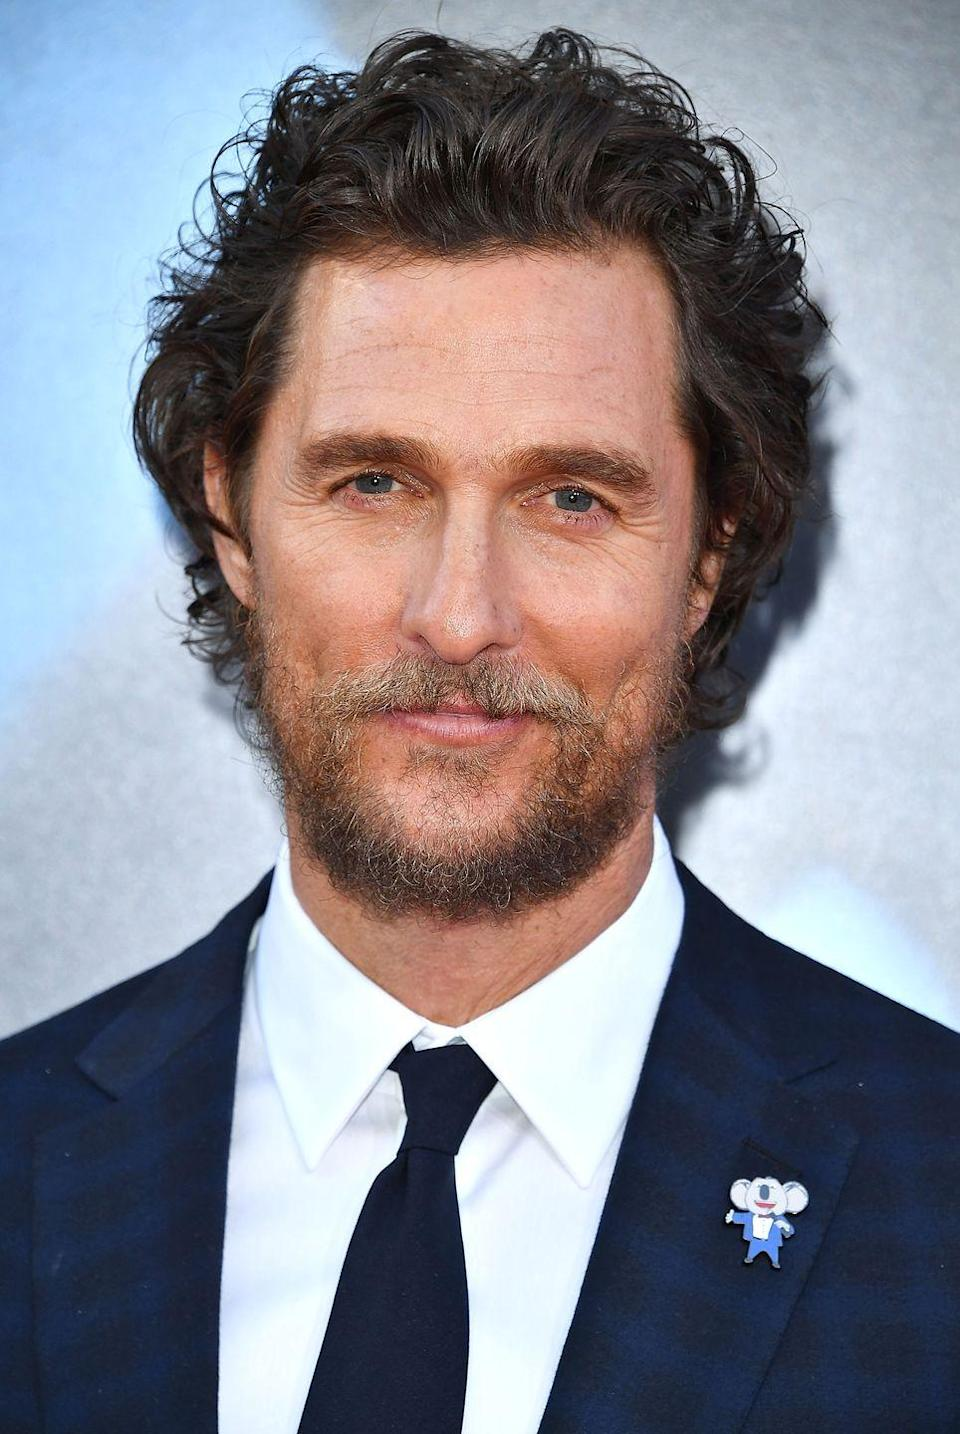 "<p>Nope, this isn't one of the celebrities on this list who advertised a lesser-known fast food chain before becoming famous. Matthew McConaughey, Academy Award winner, did a voiceover for Carl's Jr earlier this year. <a href=""https://www.adweek.com/brand-marketing/carls-jr-and-matthew-mcconaughey-skip-the-sex-appeal-and-go-straight-to-the-bacon-in-new-ads/"" rel=""nofollow noopener"" target=""_blank"" data-ylk=""slk:Ad Week"" class=""link rapid-noclick-resp""><em>Ad Week</em></a> notes that Carl's Jr is pivoting away from the over-the-top sex appeal that once defined the brand (see: earlier slides featuring Kim K., Kate Upton, etc.). </p>"